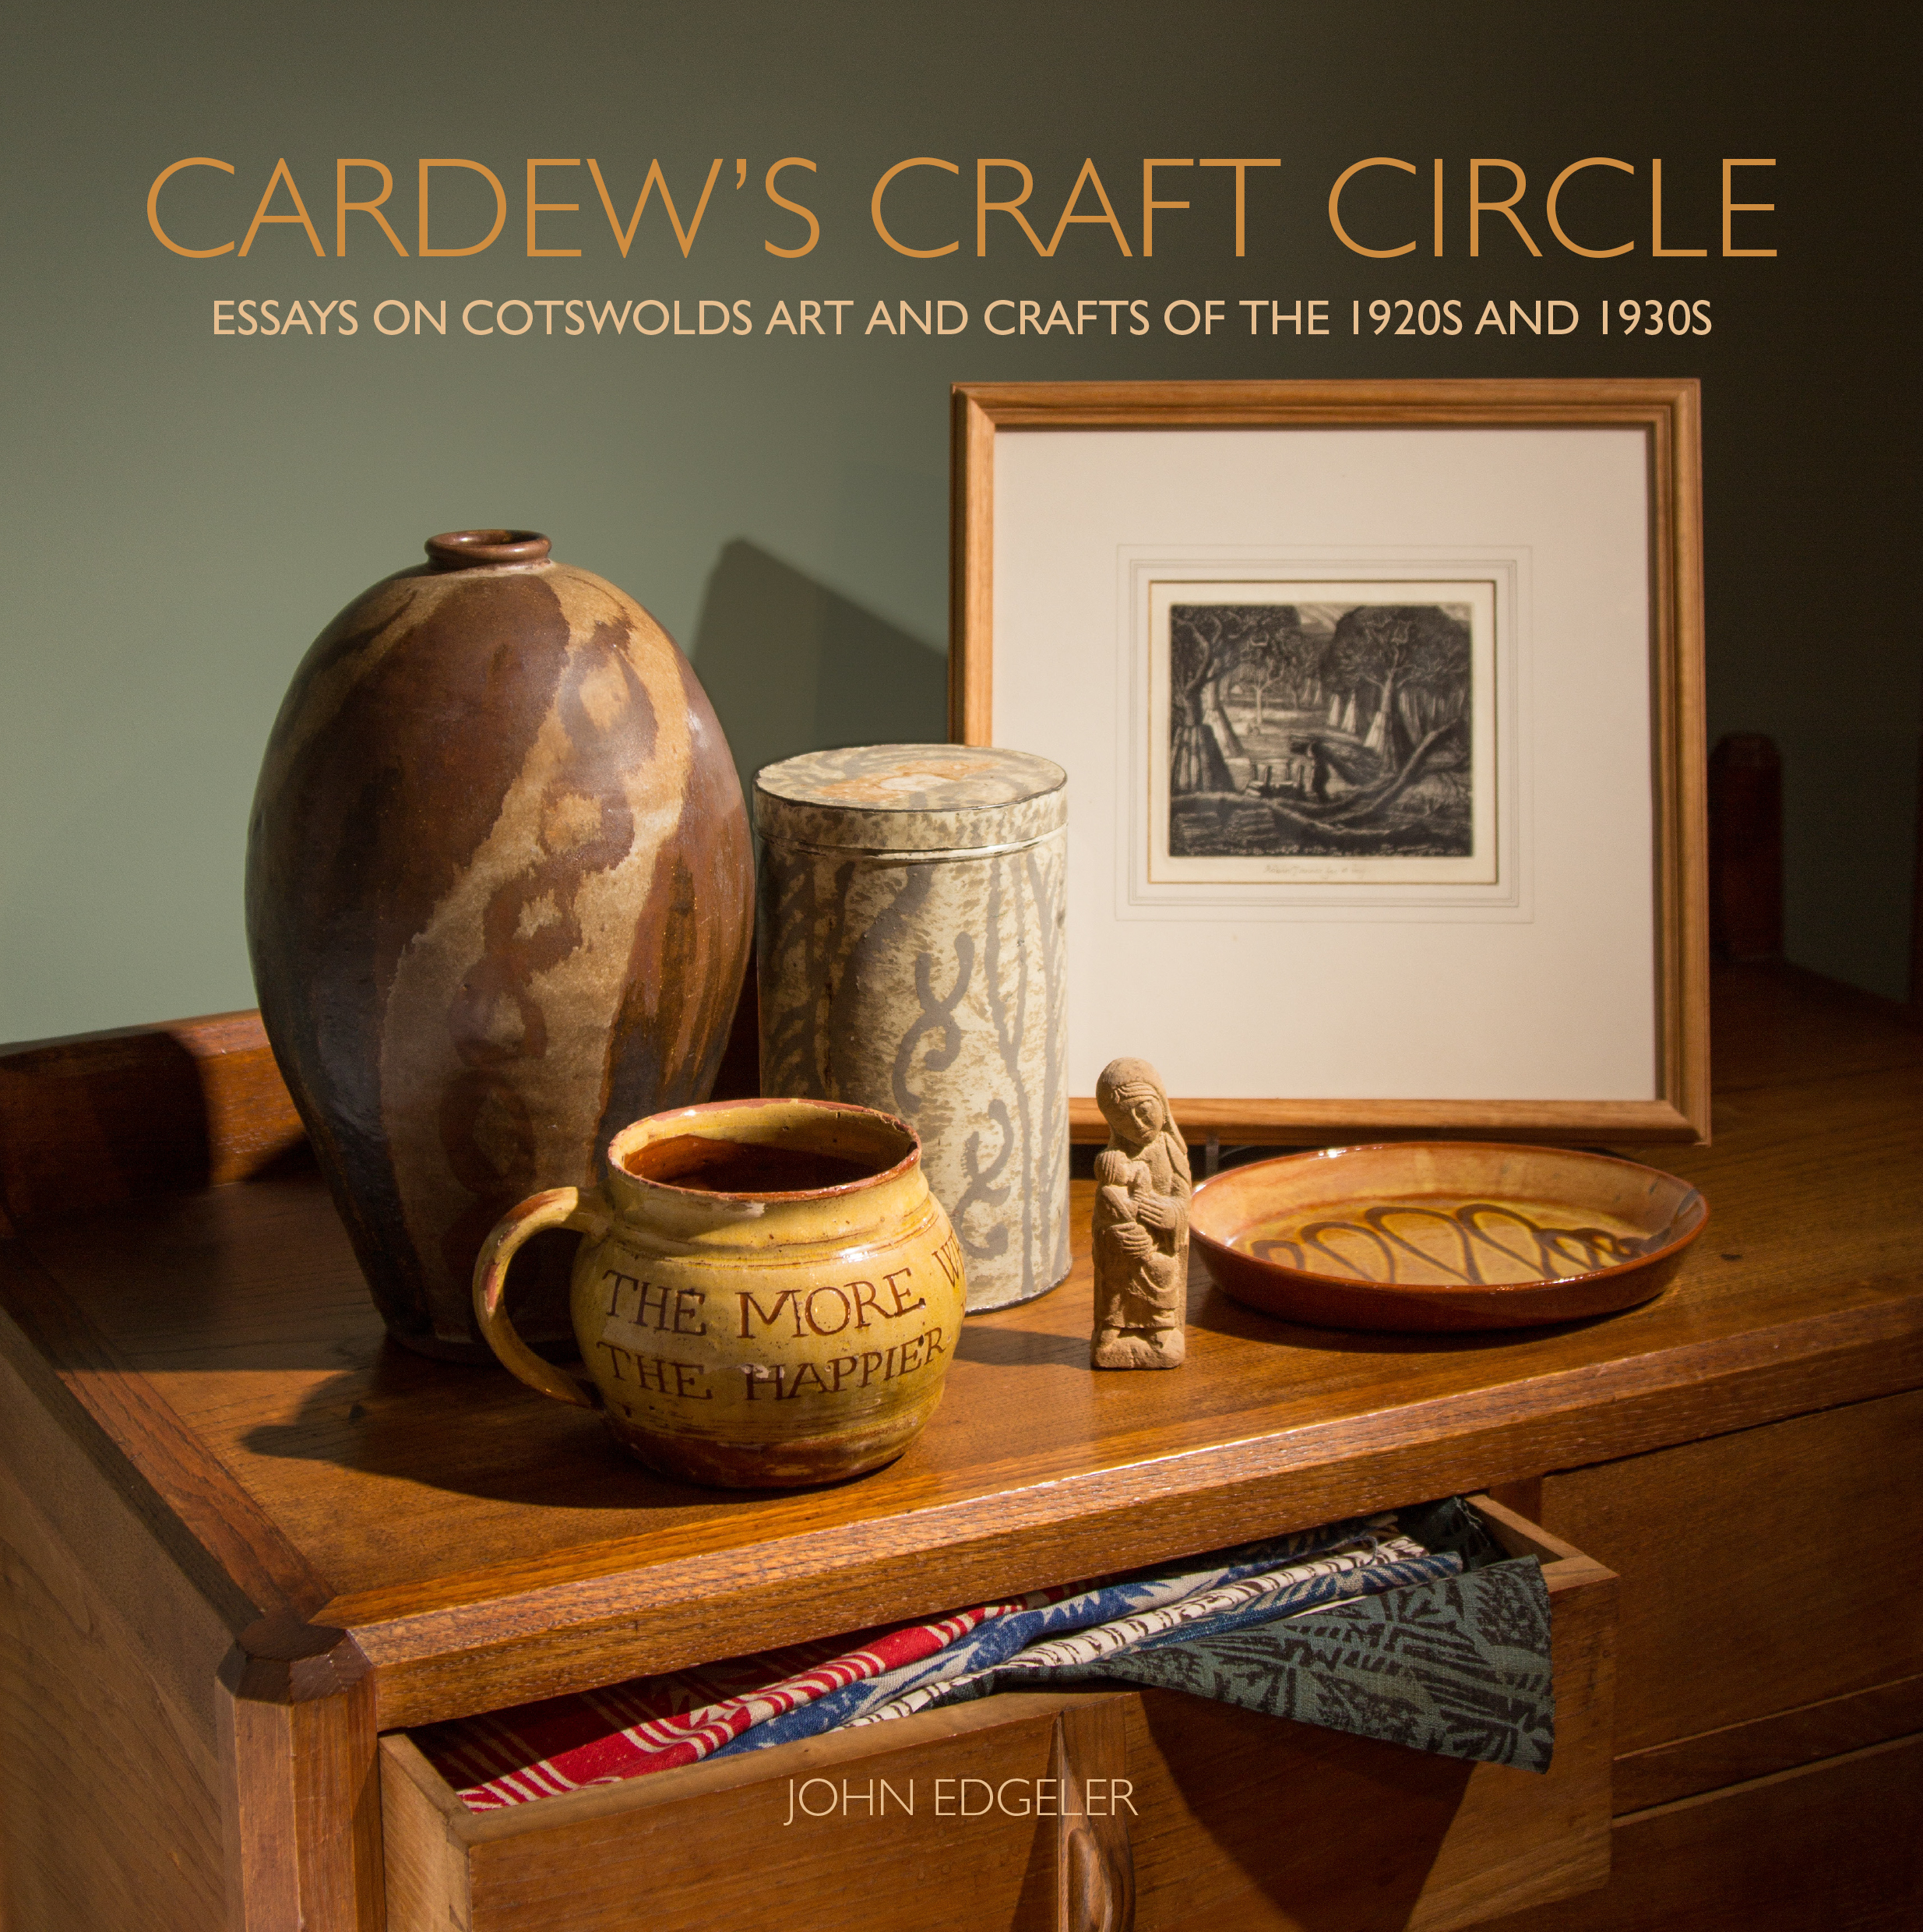 Cardew's Craft Circle ~ essays on Cotswolds Art & Crafts of the 1920s & 1930s